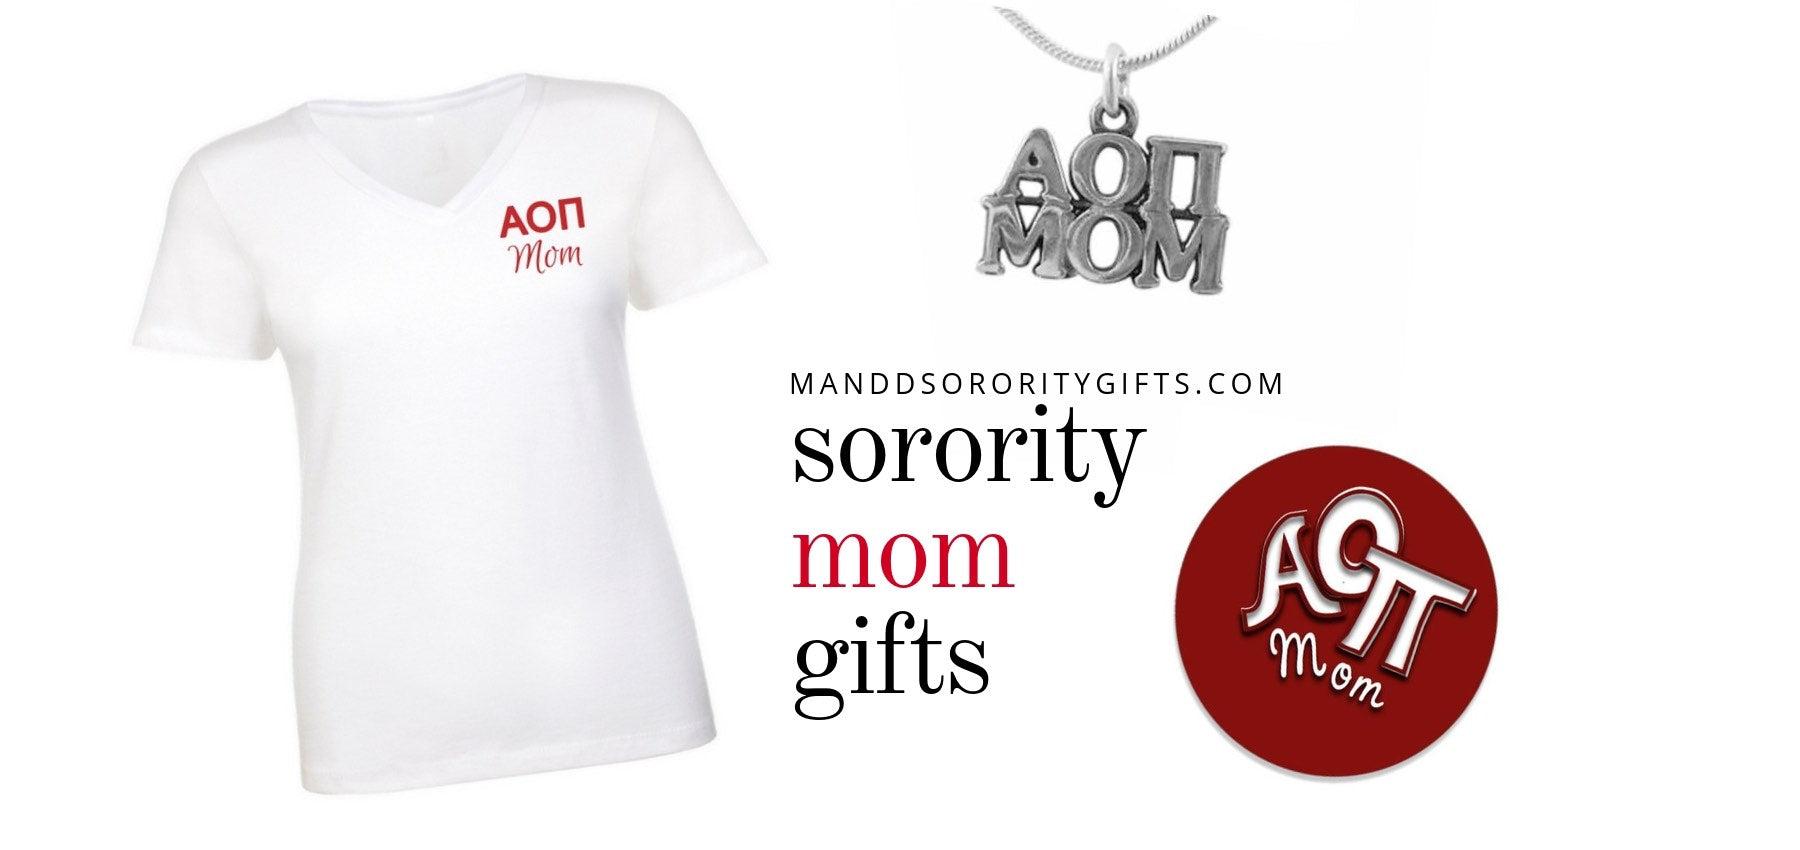 Alpha Omicron Pi Mom Gifts I 12 Reasons Moms Are the Best